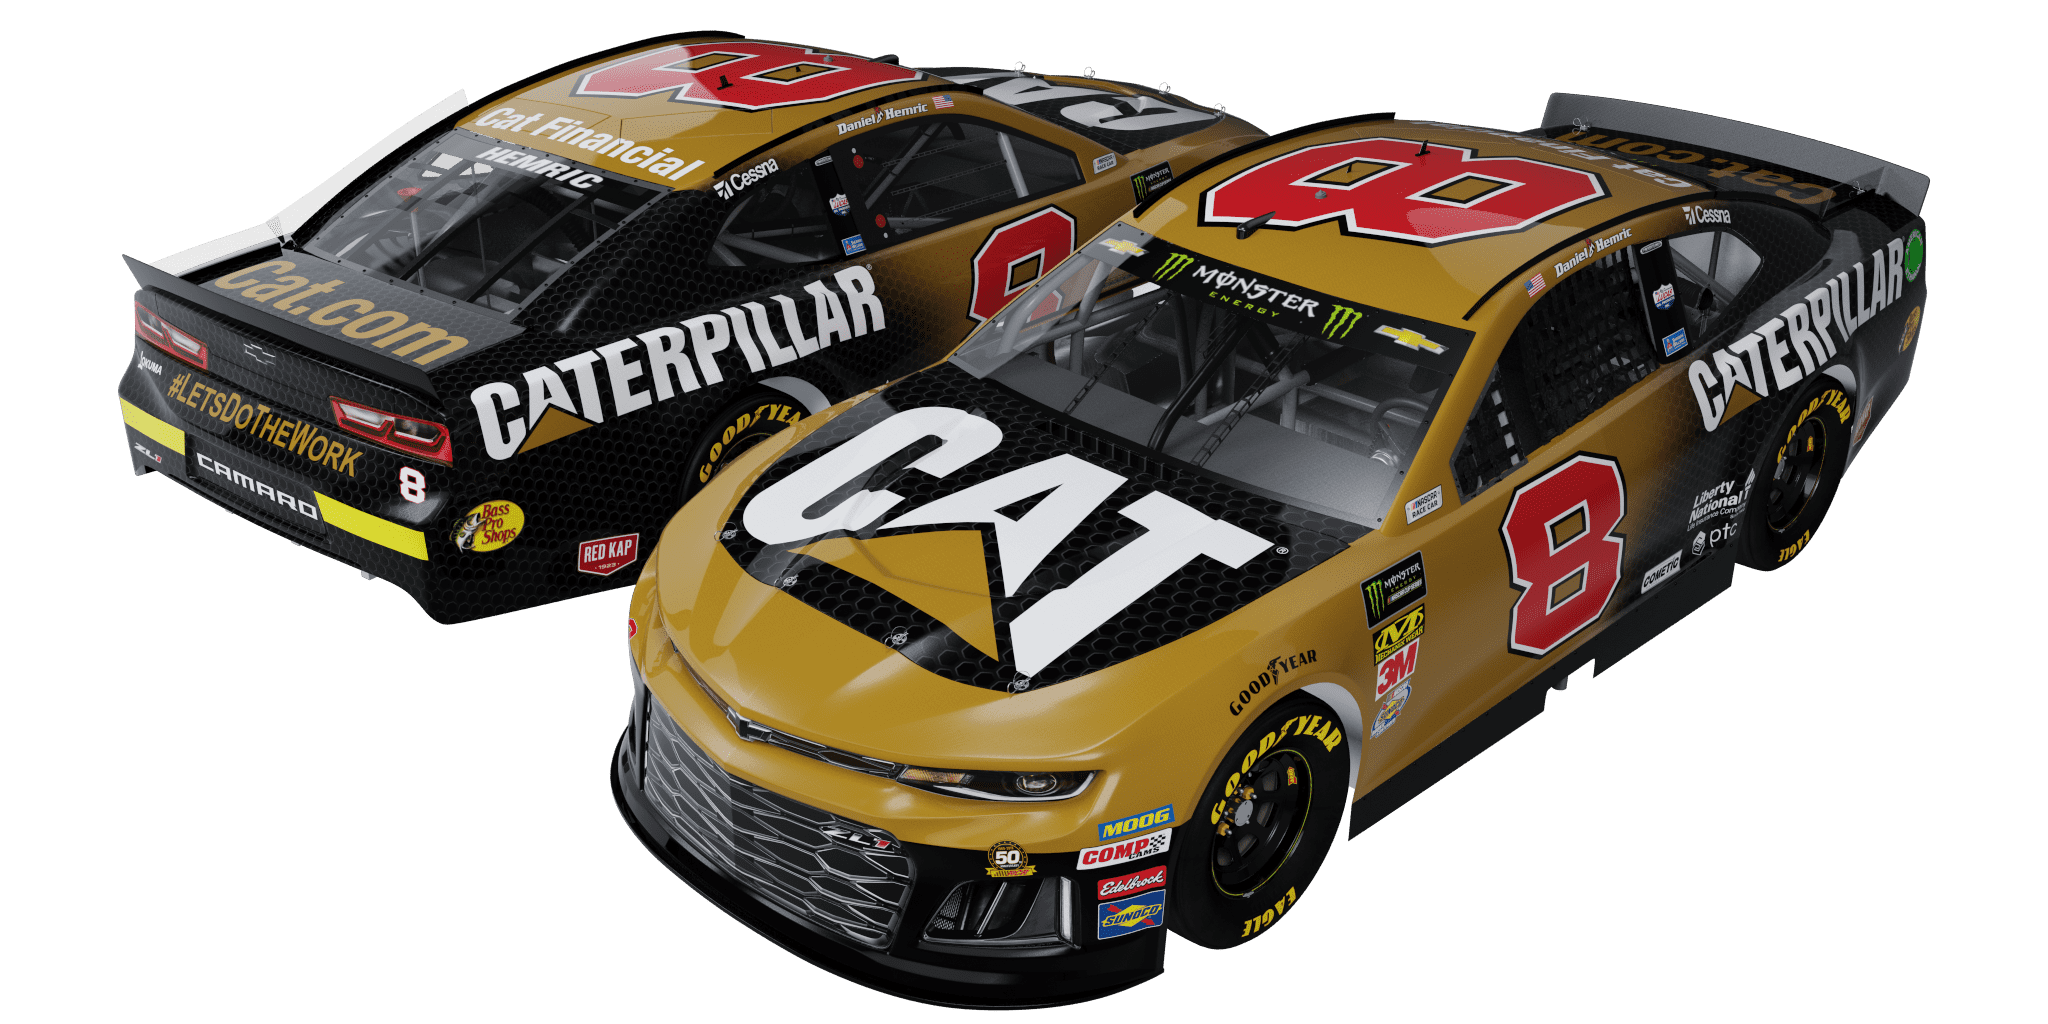 2019 Daniel Hemric Caterpillar 1:24 Scale Die-Cast